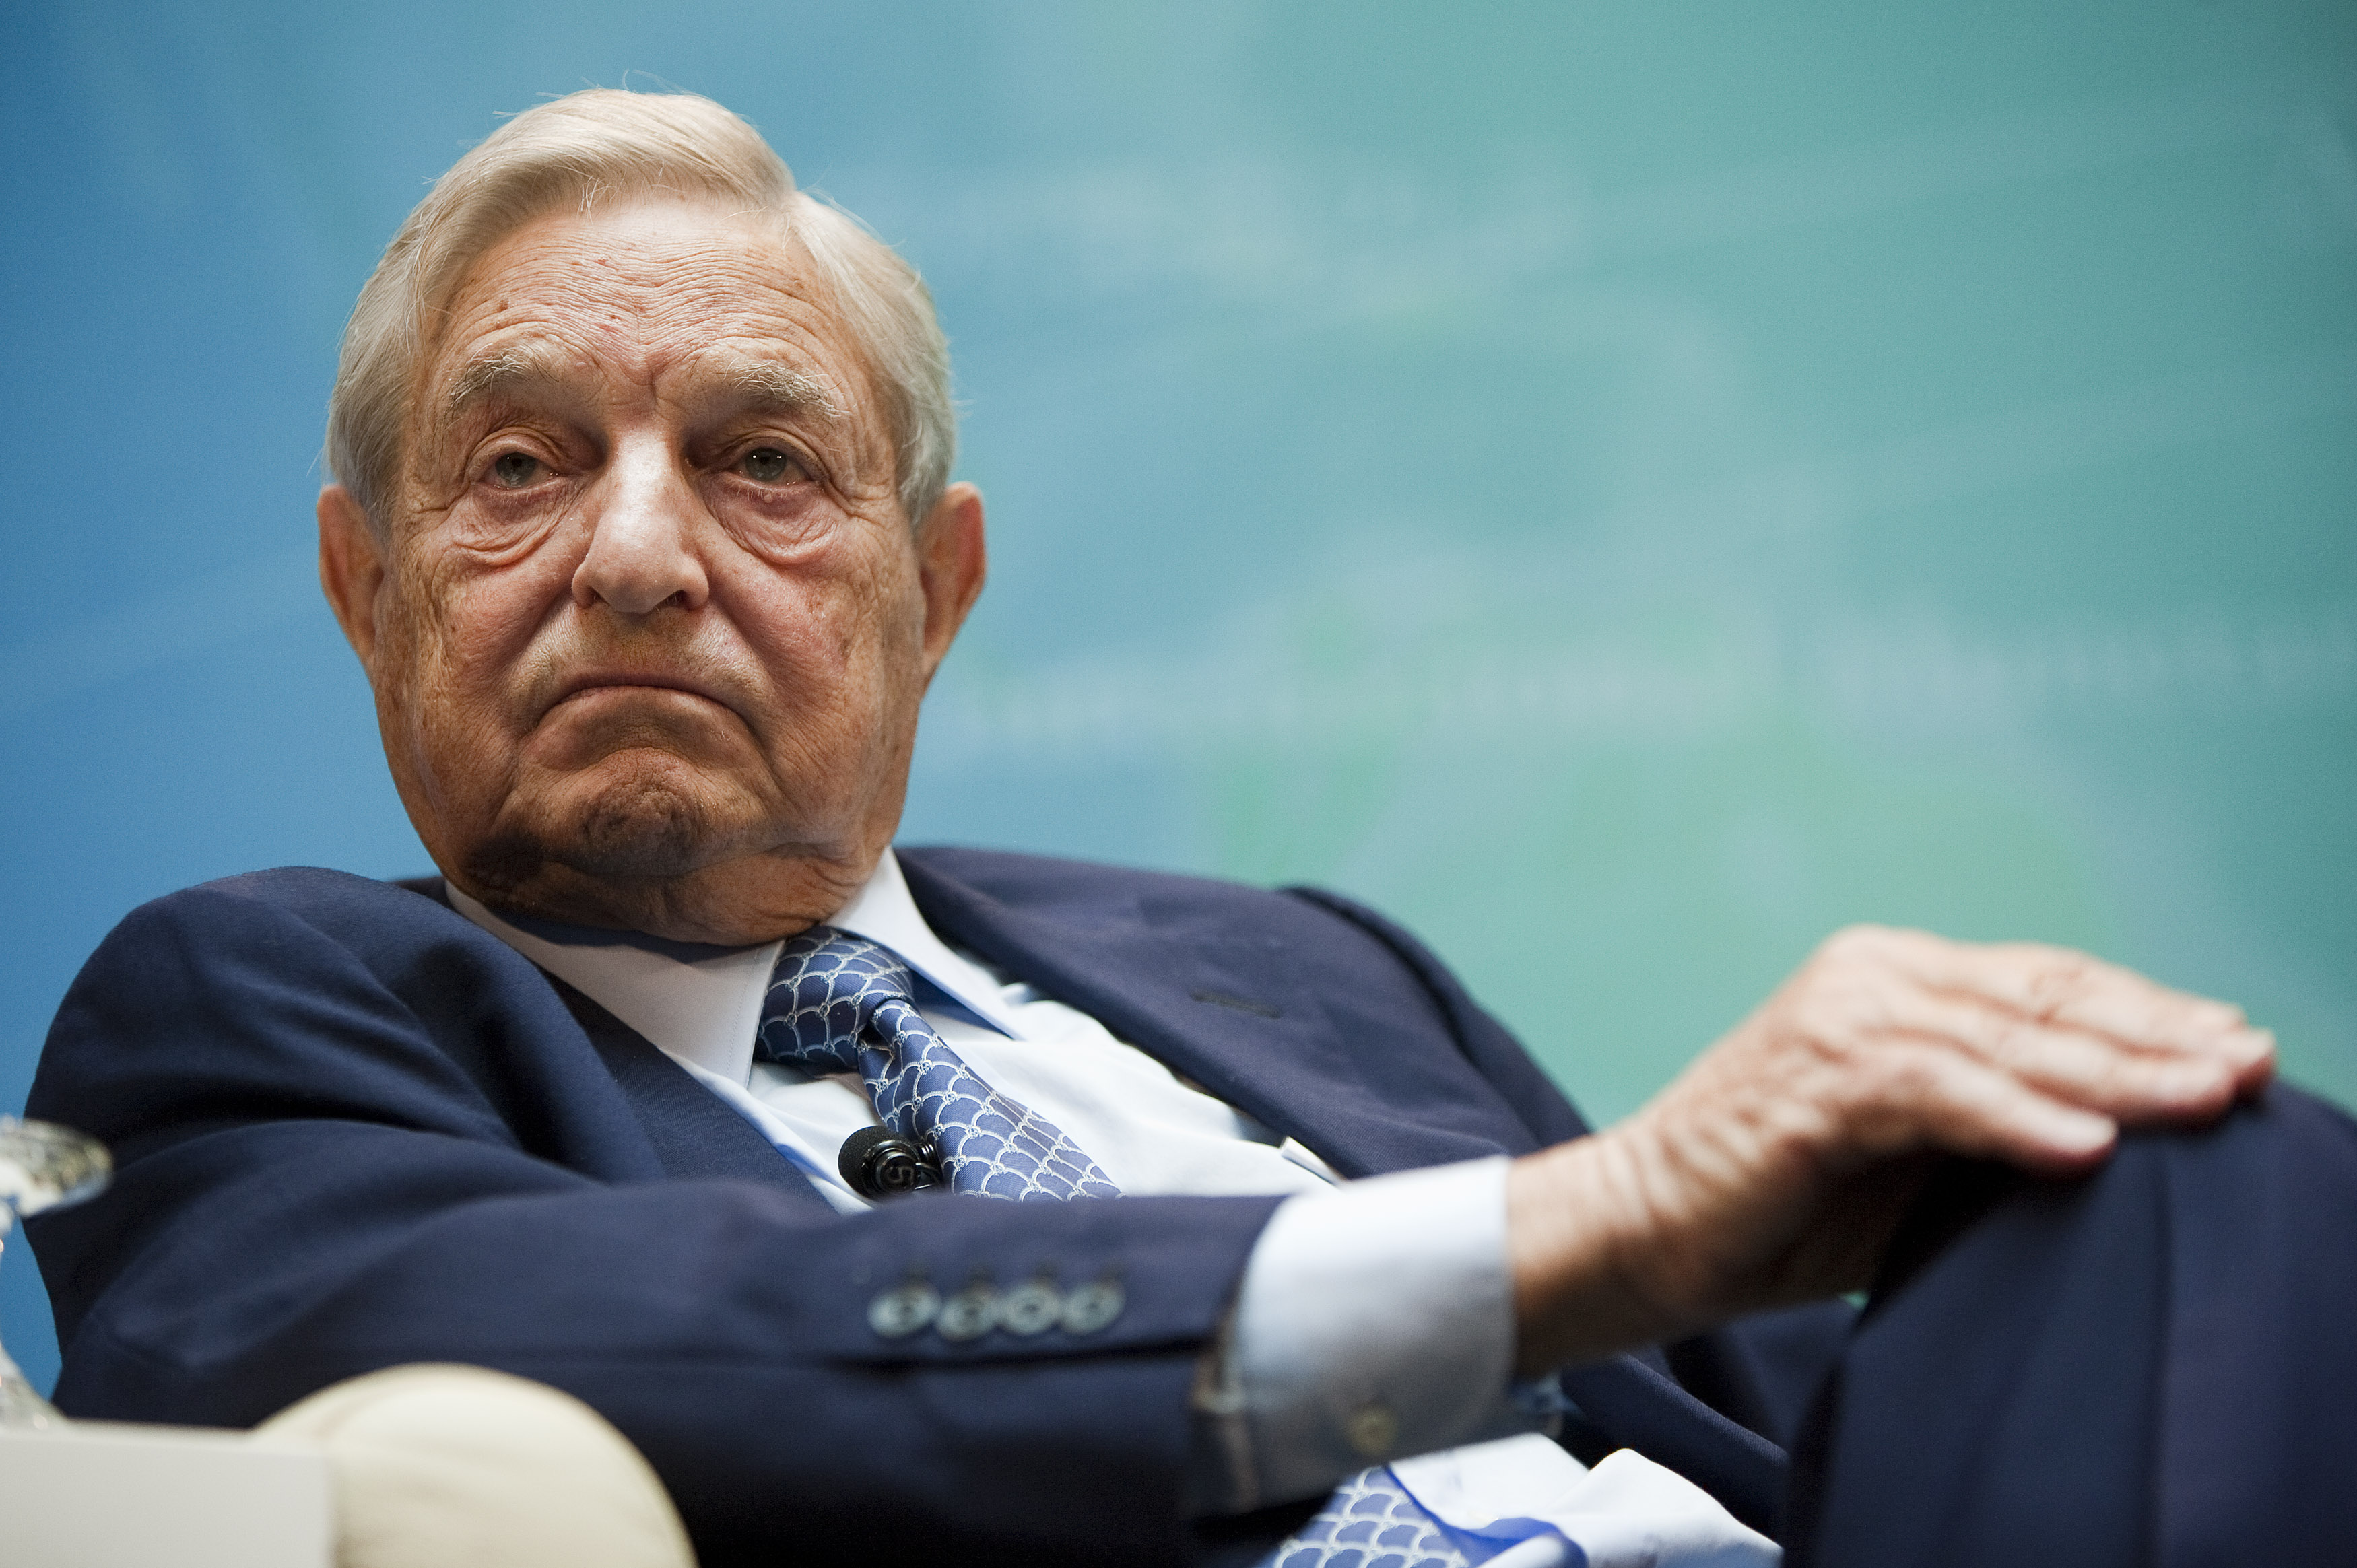 George Soros is back and he's making big bearish moves